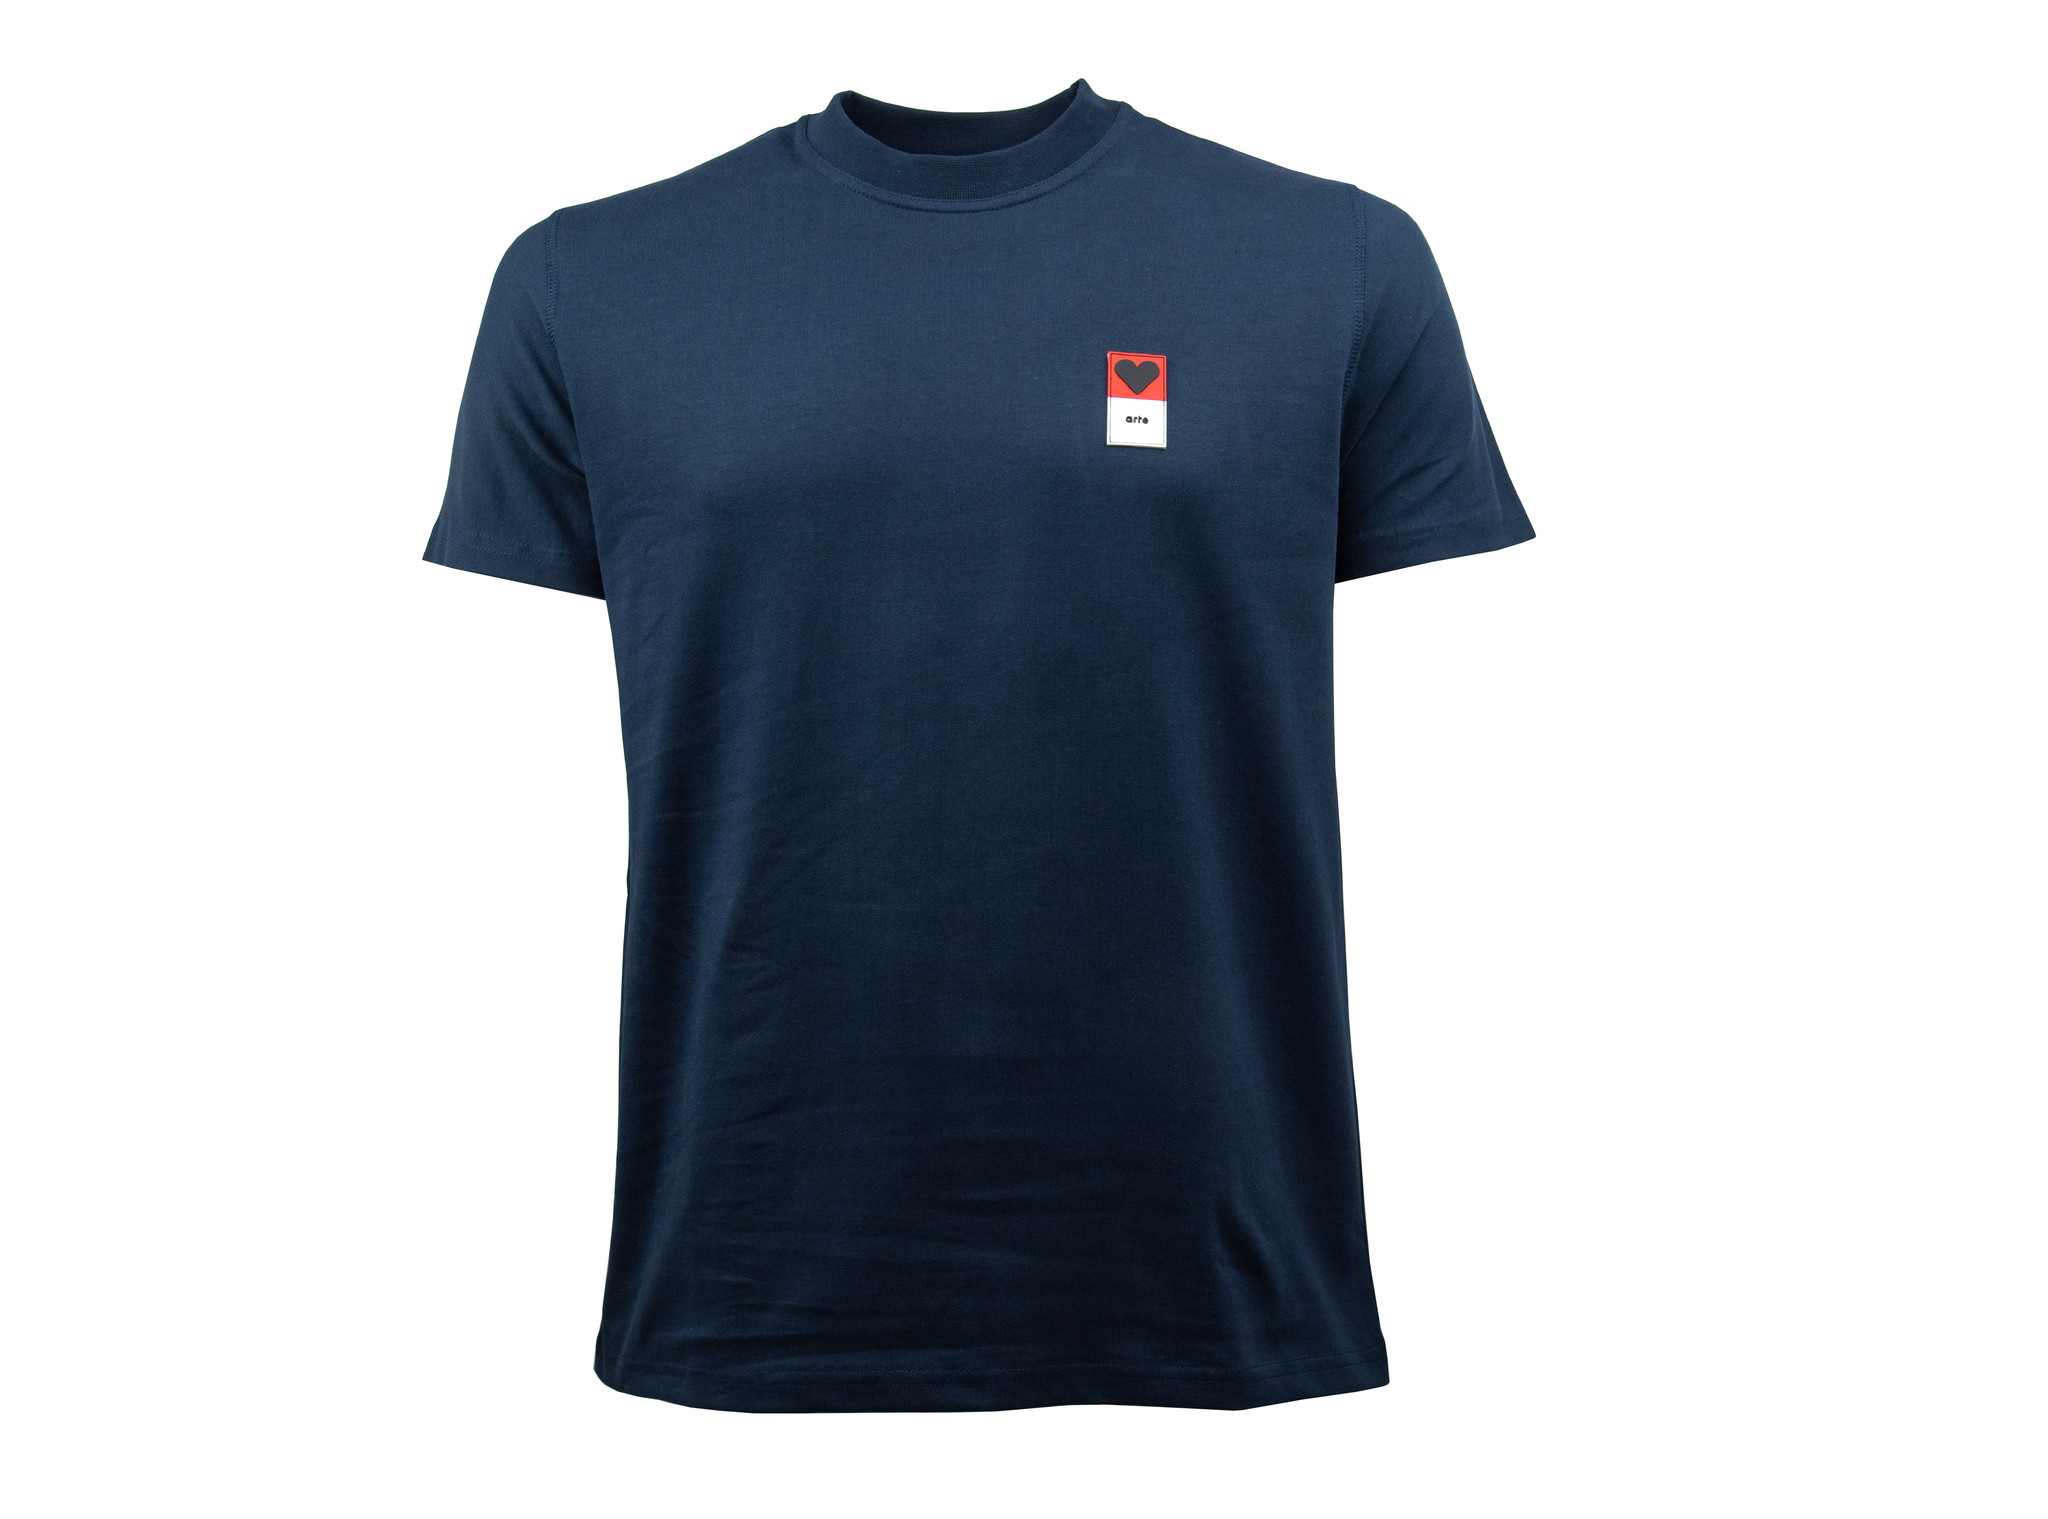 Arte Antwerp T Shirt Arte T Shirt Troy Heart Patch Navy Ss19 026 Bruut Online Shop